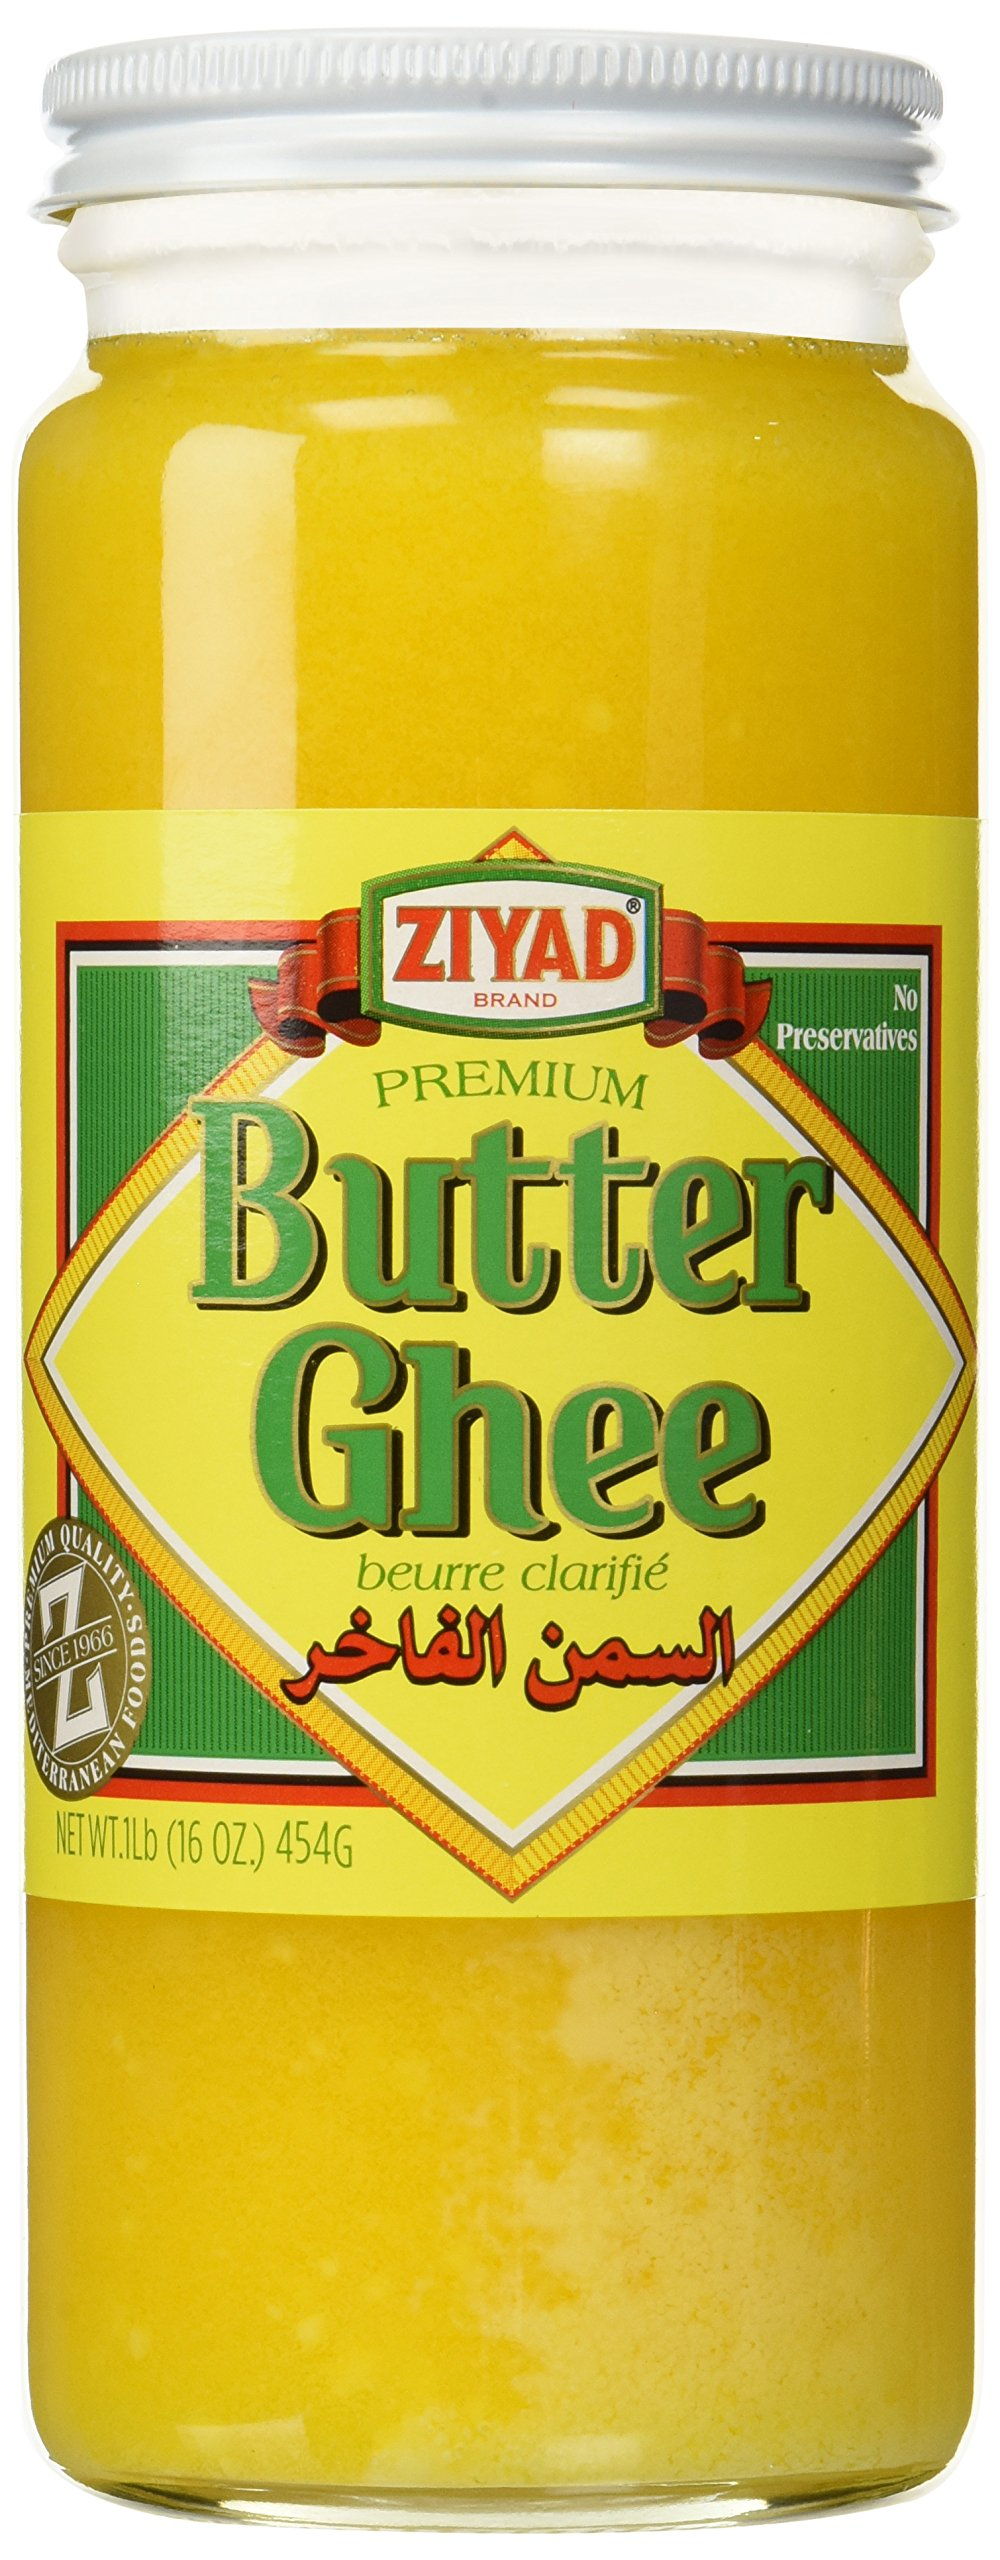 Ziyad Brand Butter Ghee - 16 oz by Ziyad